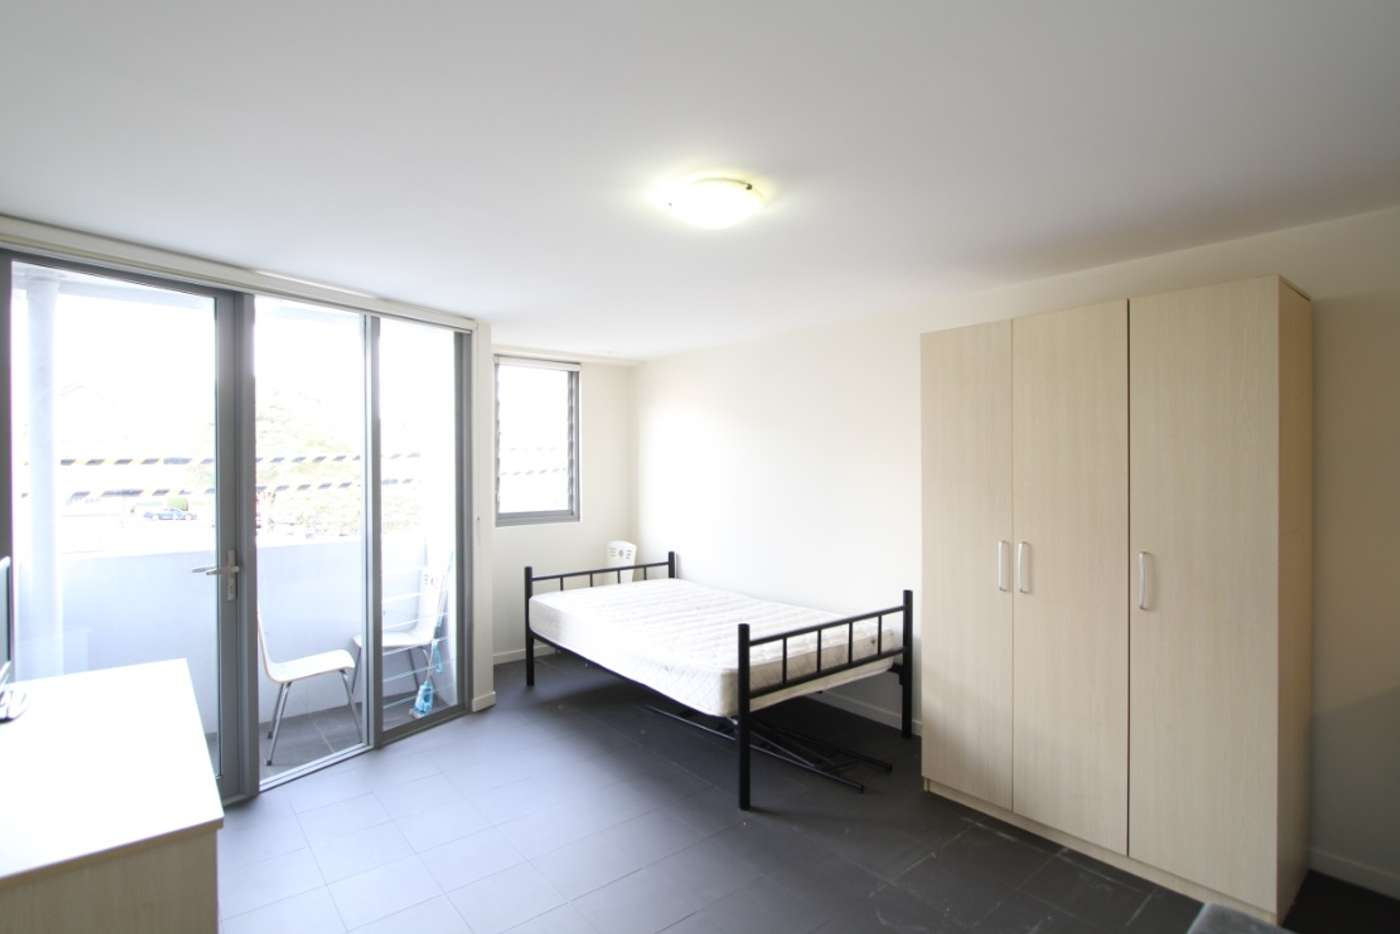 Main view of Homely studio listing, 13/4 Cope Street, Redfern NSW 2016